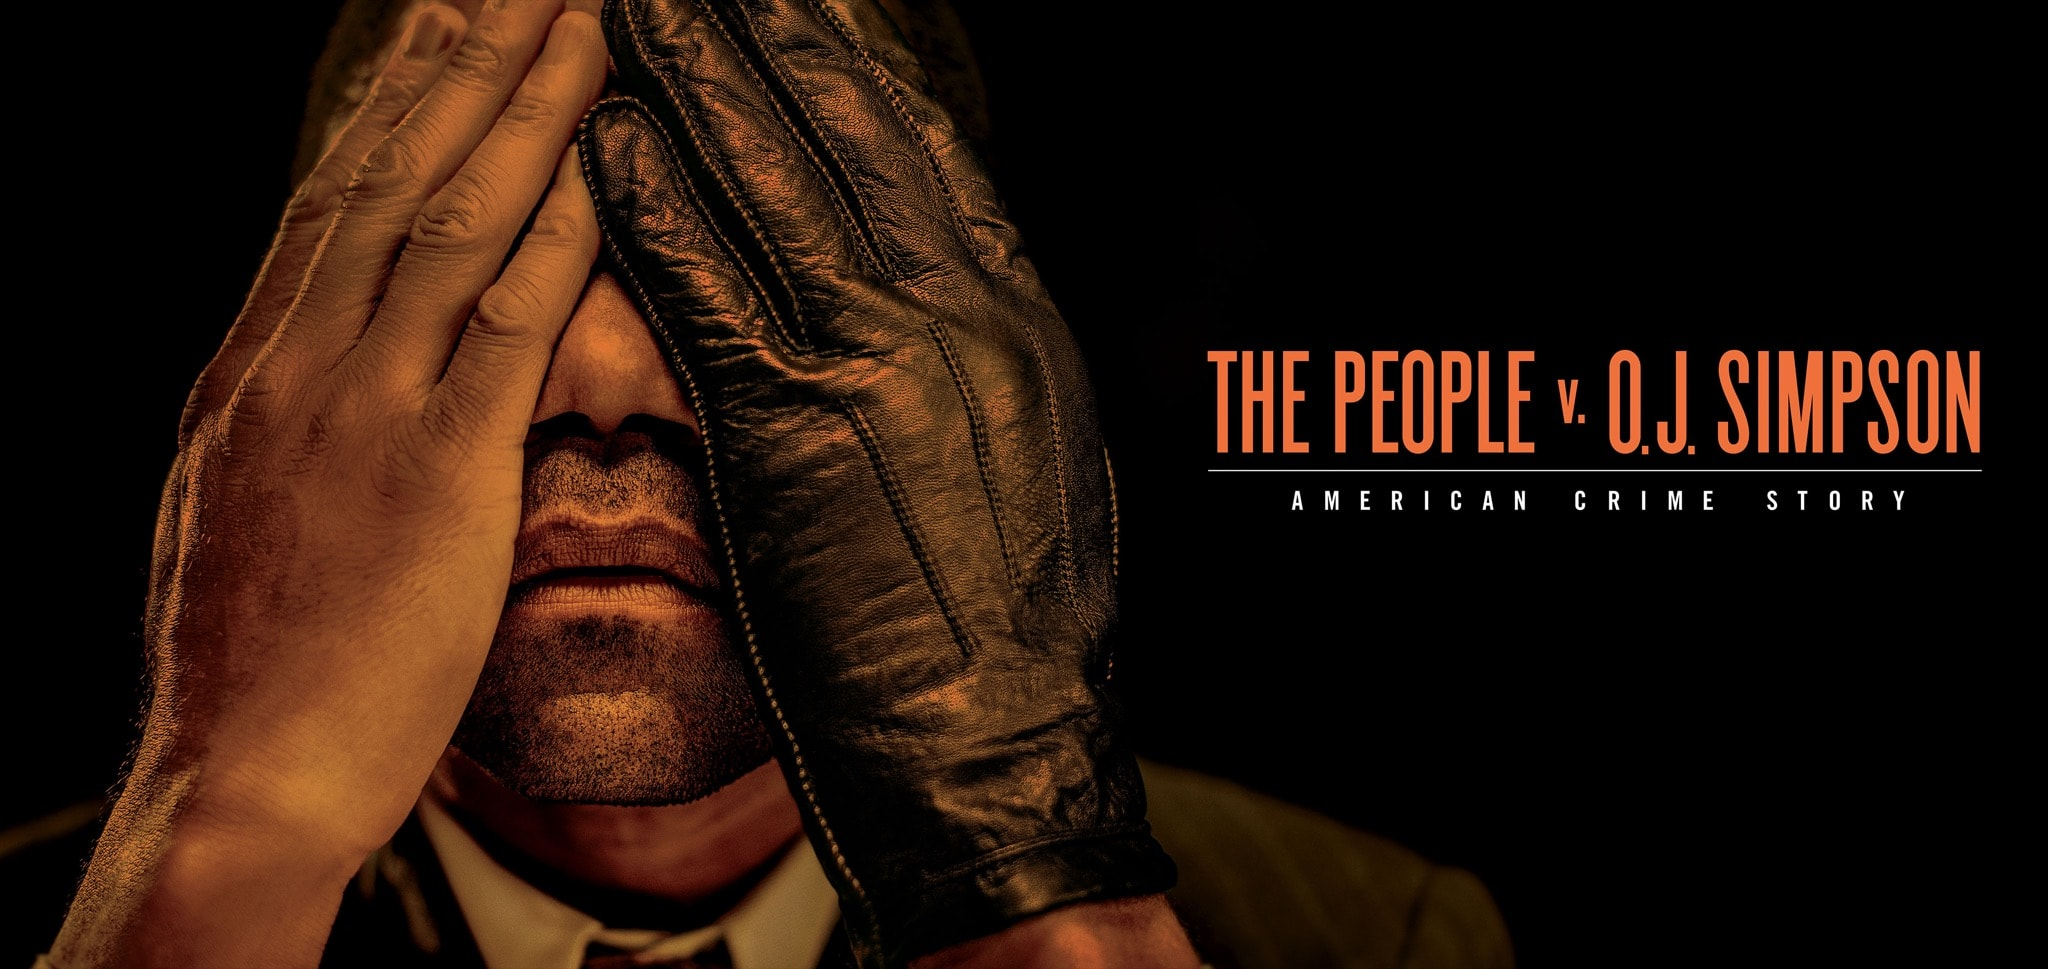 the-people-v-oj-simpson-american-crime-story-affiche